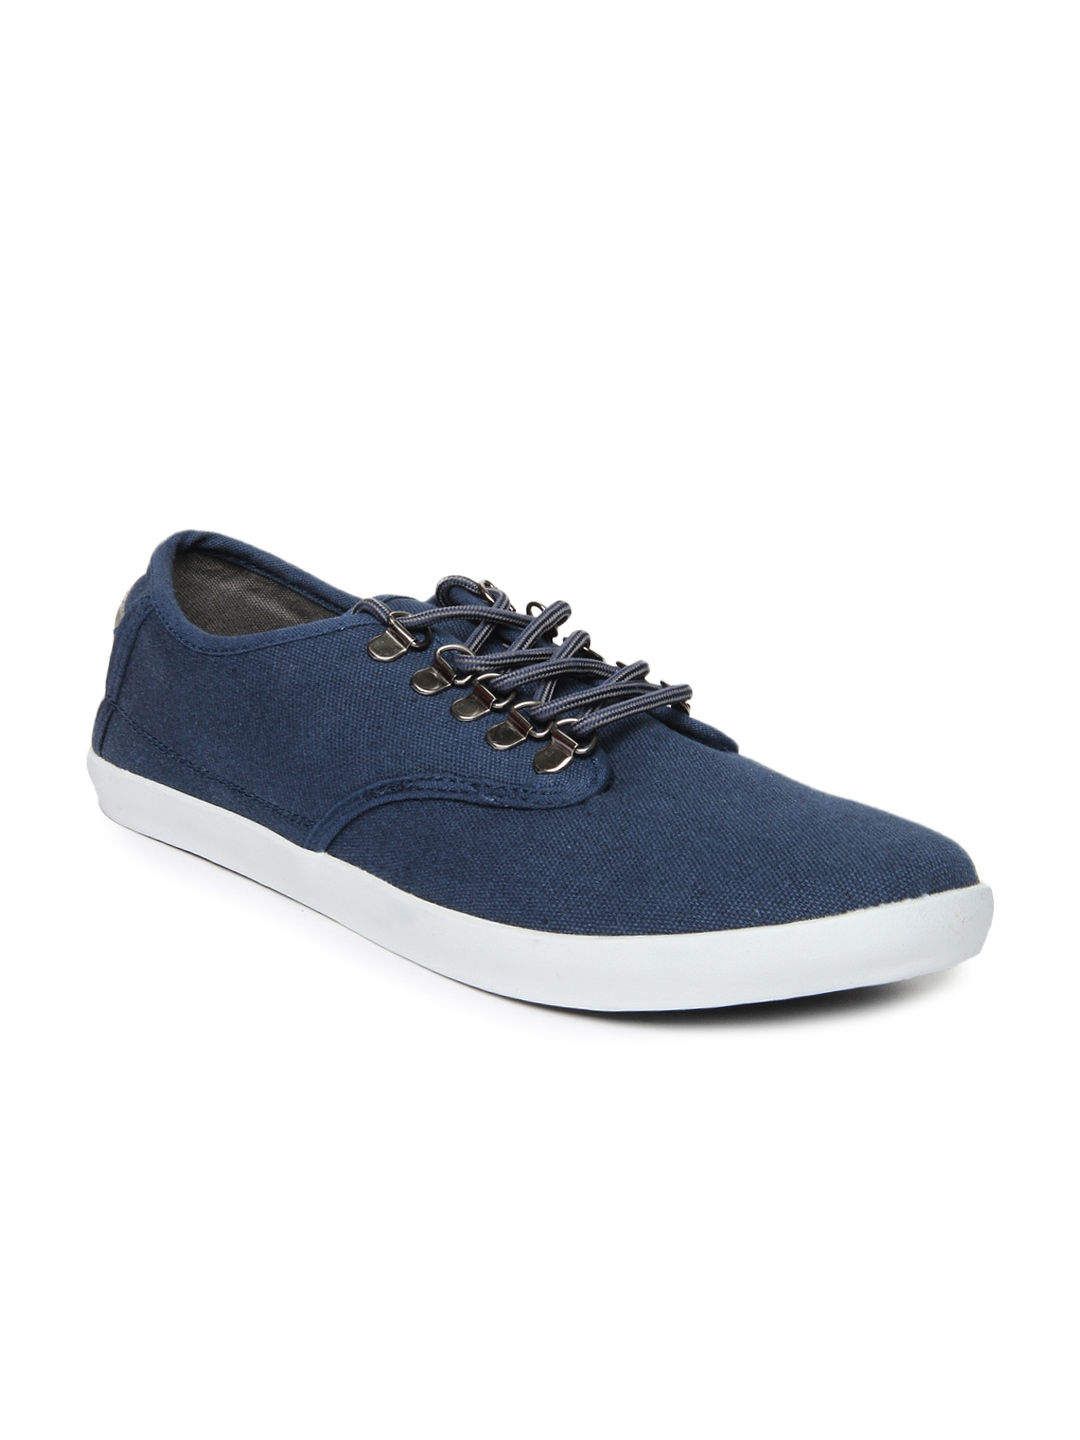 myntra roadster navy casual shoes 678643 buy myntra